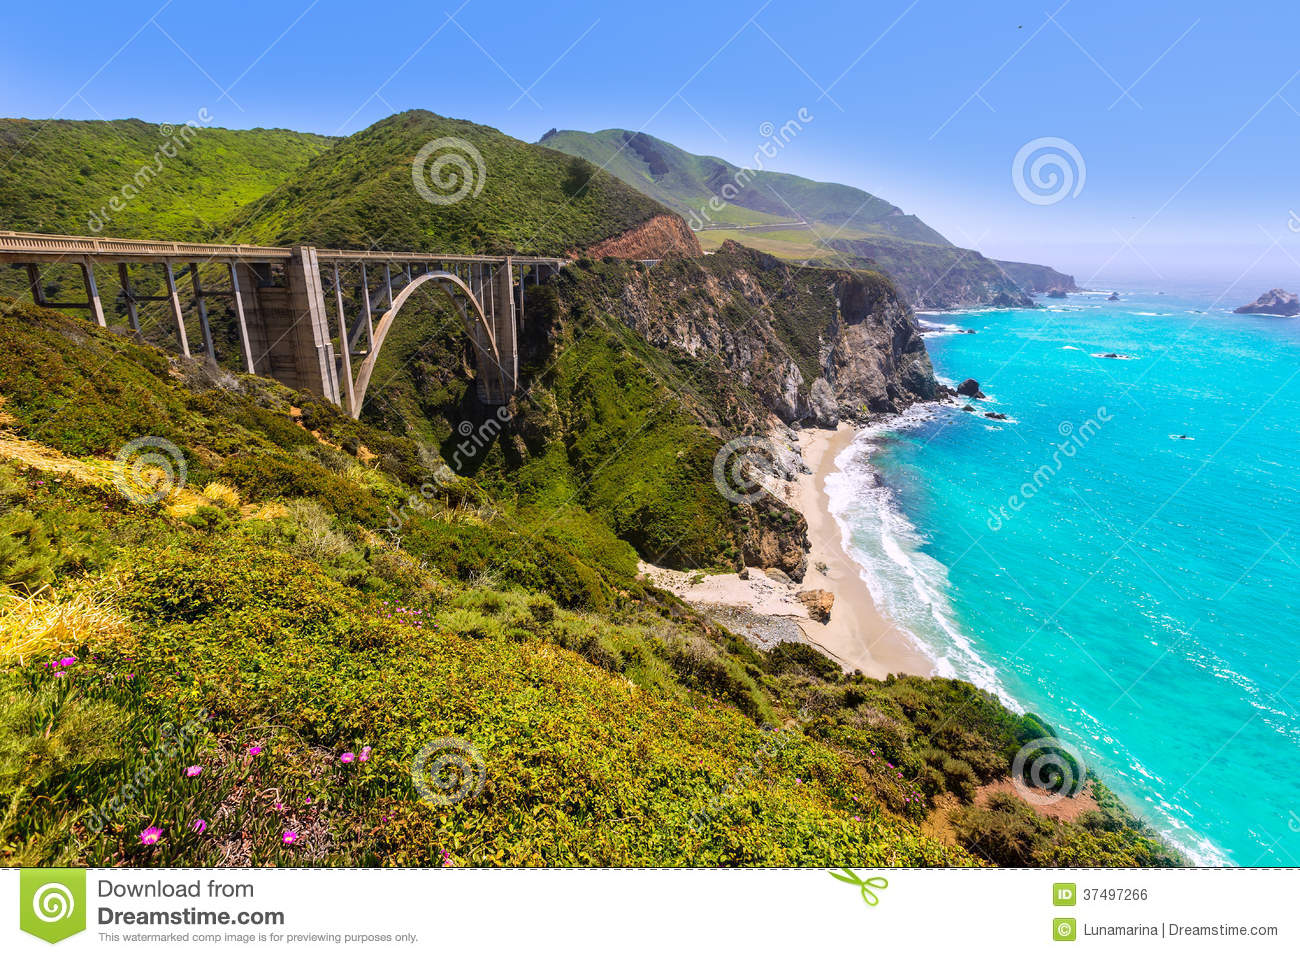 California Bixby bridge in Big Sur Monterey County in Route 1